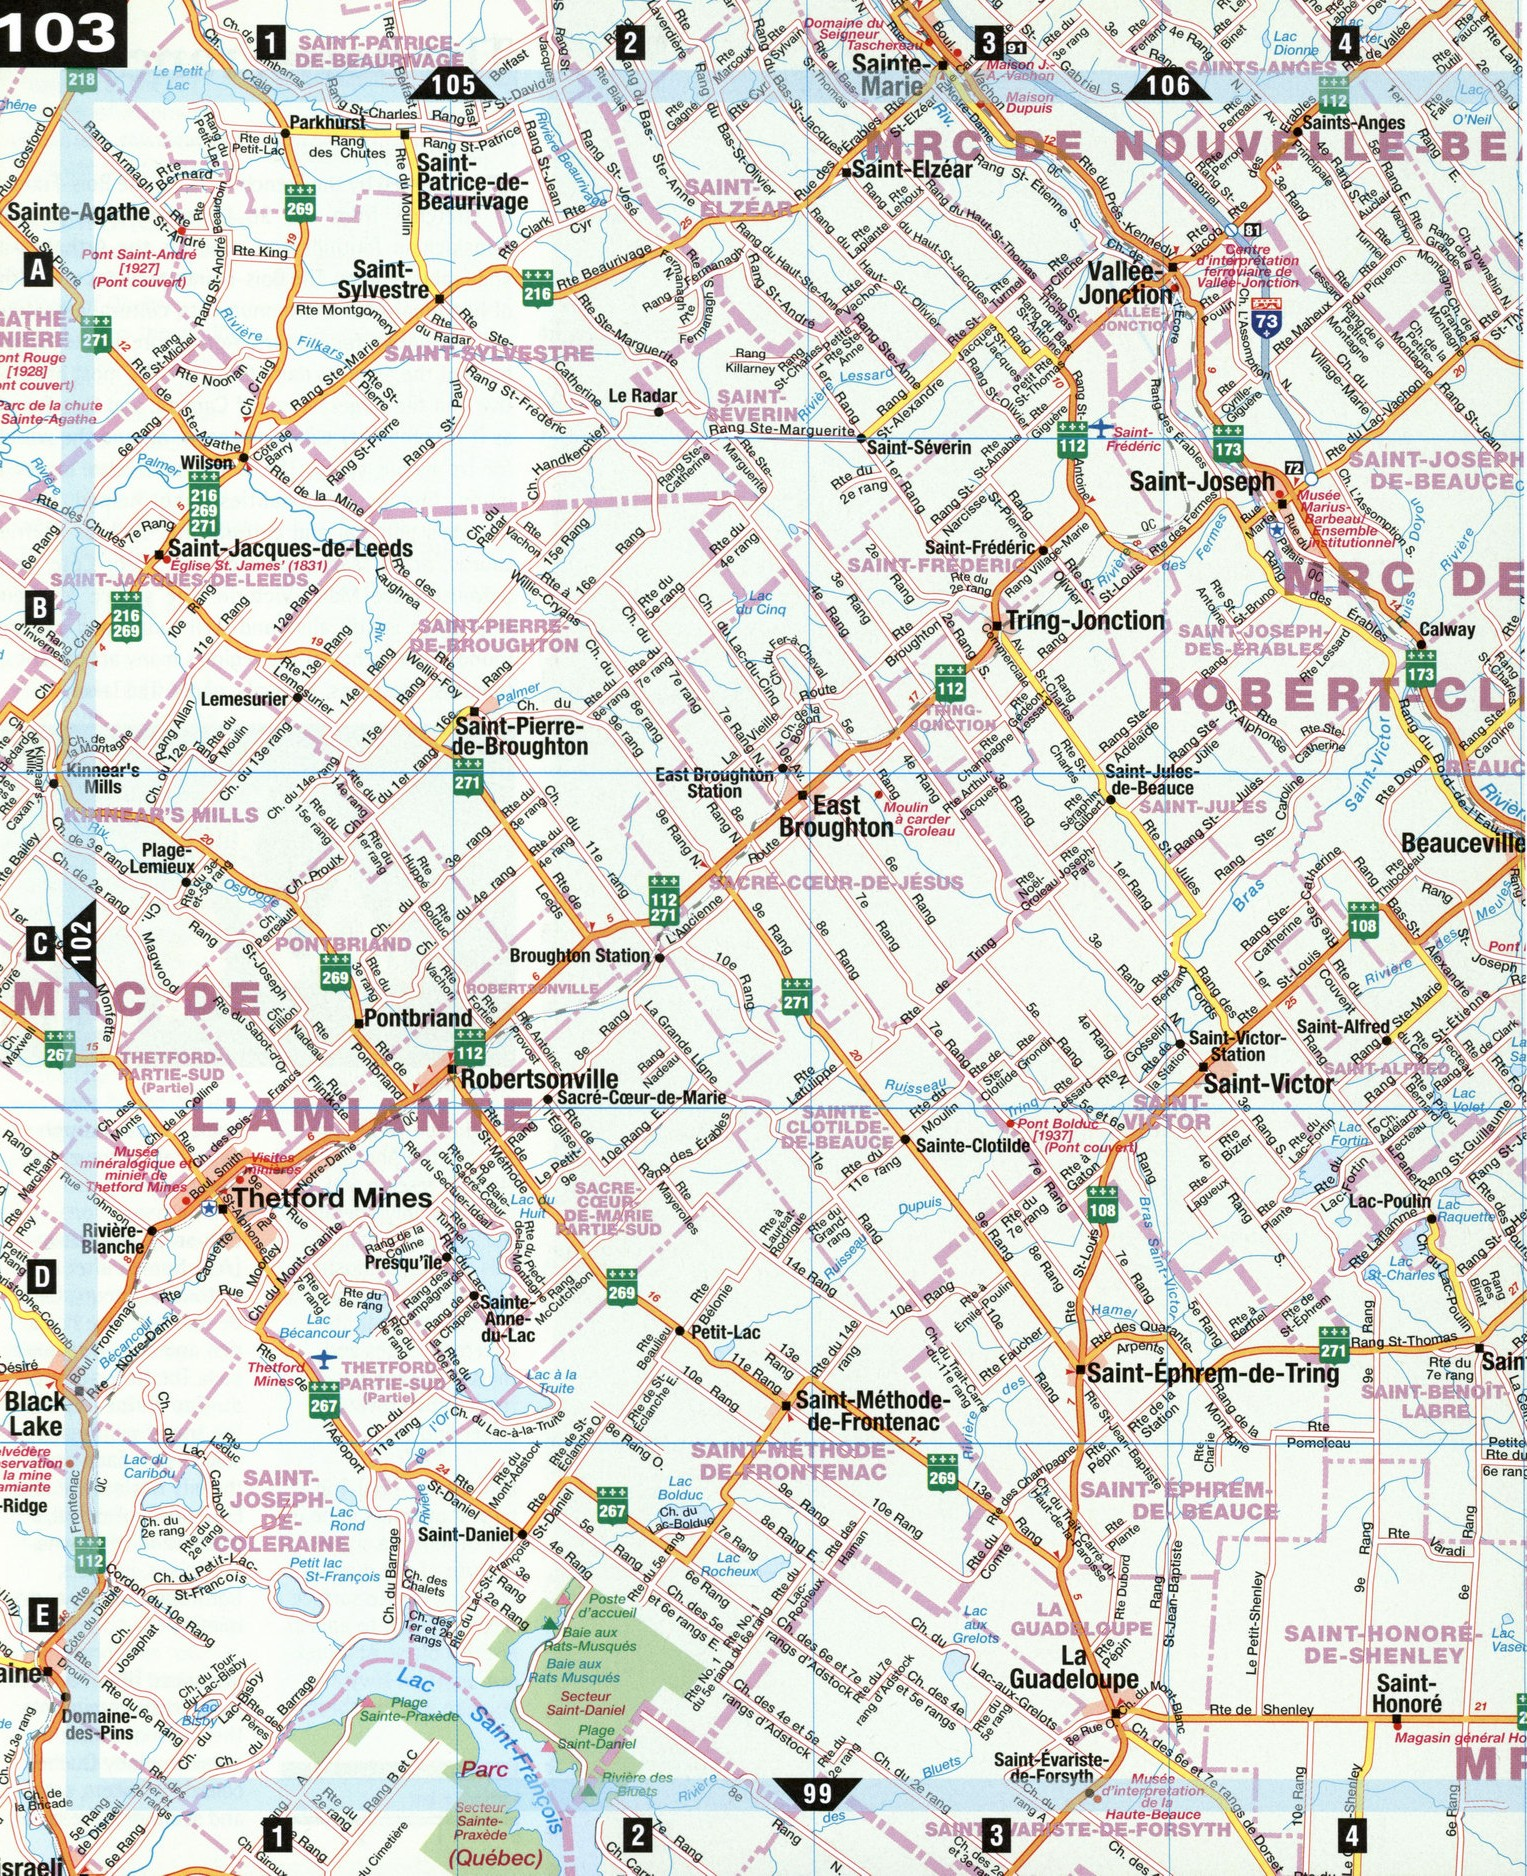 Beauce - US road map on belgium highway map, seattle highway map, portland highway map, france highway map, japan highway map, england highway map, italy highway map, miami highway map, appalachian mountains highway map, cincinnati highway map, north america highway map, new zealand highway map, romania highway map, portugal highway map, cape breton island highway map, paris highway map, delaware highway map, houston highway map, nashville highway map, bc highway map,